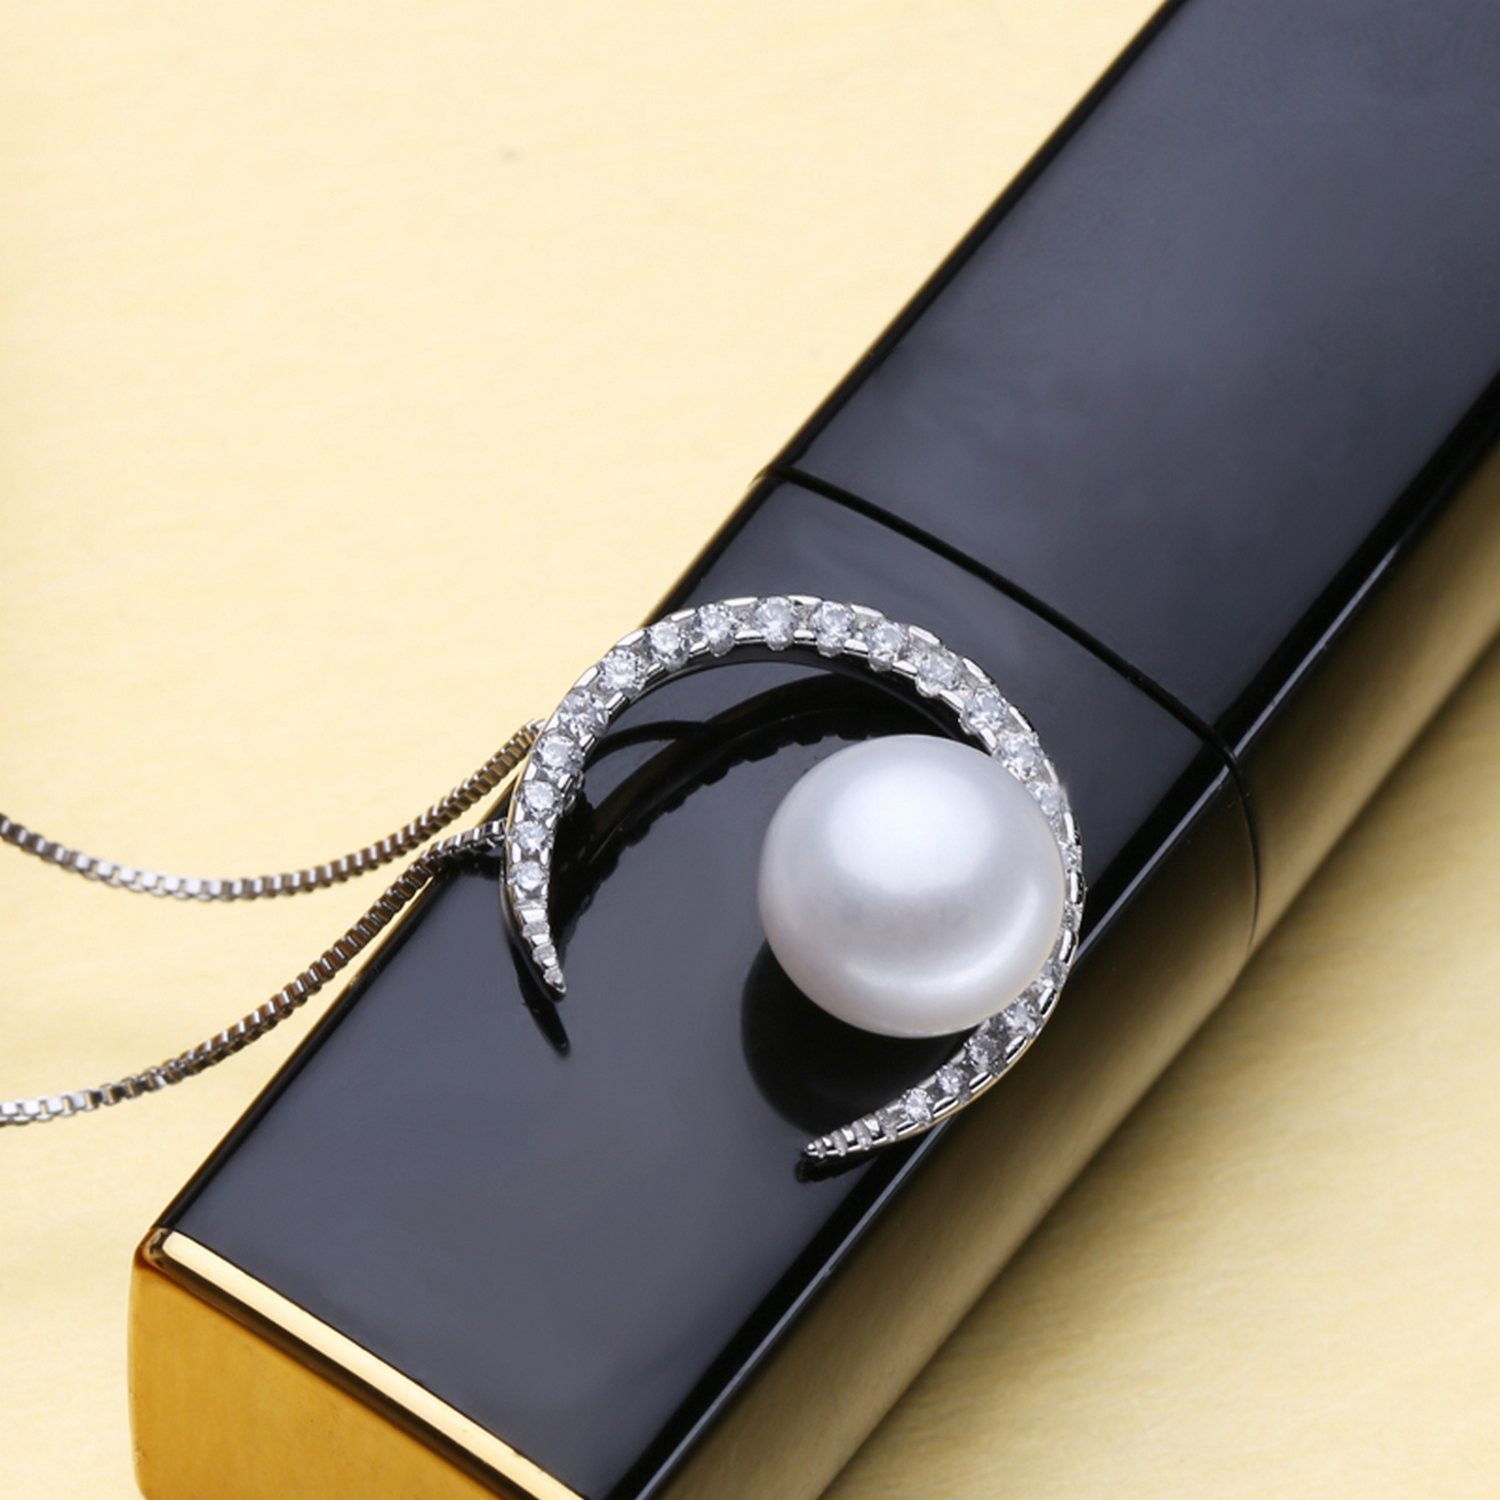 CS-DB Jewelry Silver Pearl Black White Chain Charm Pendants Necklaces